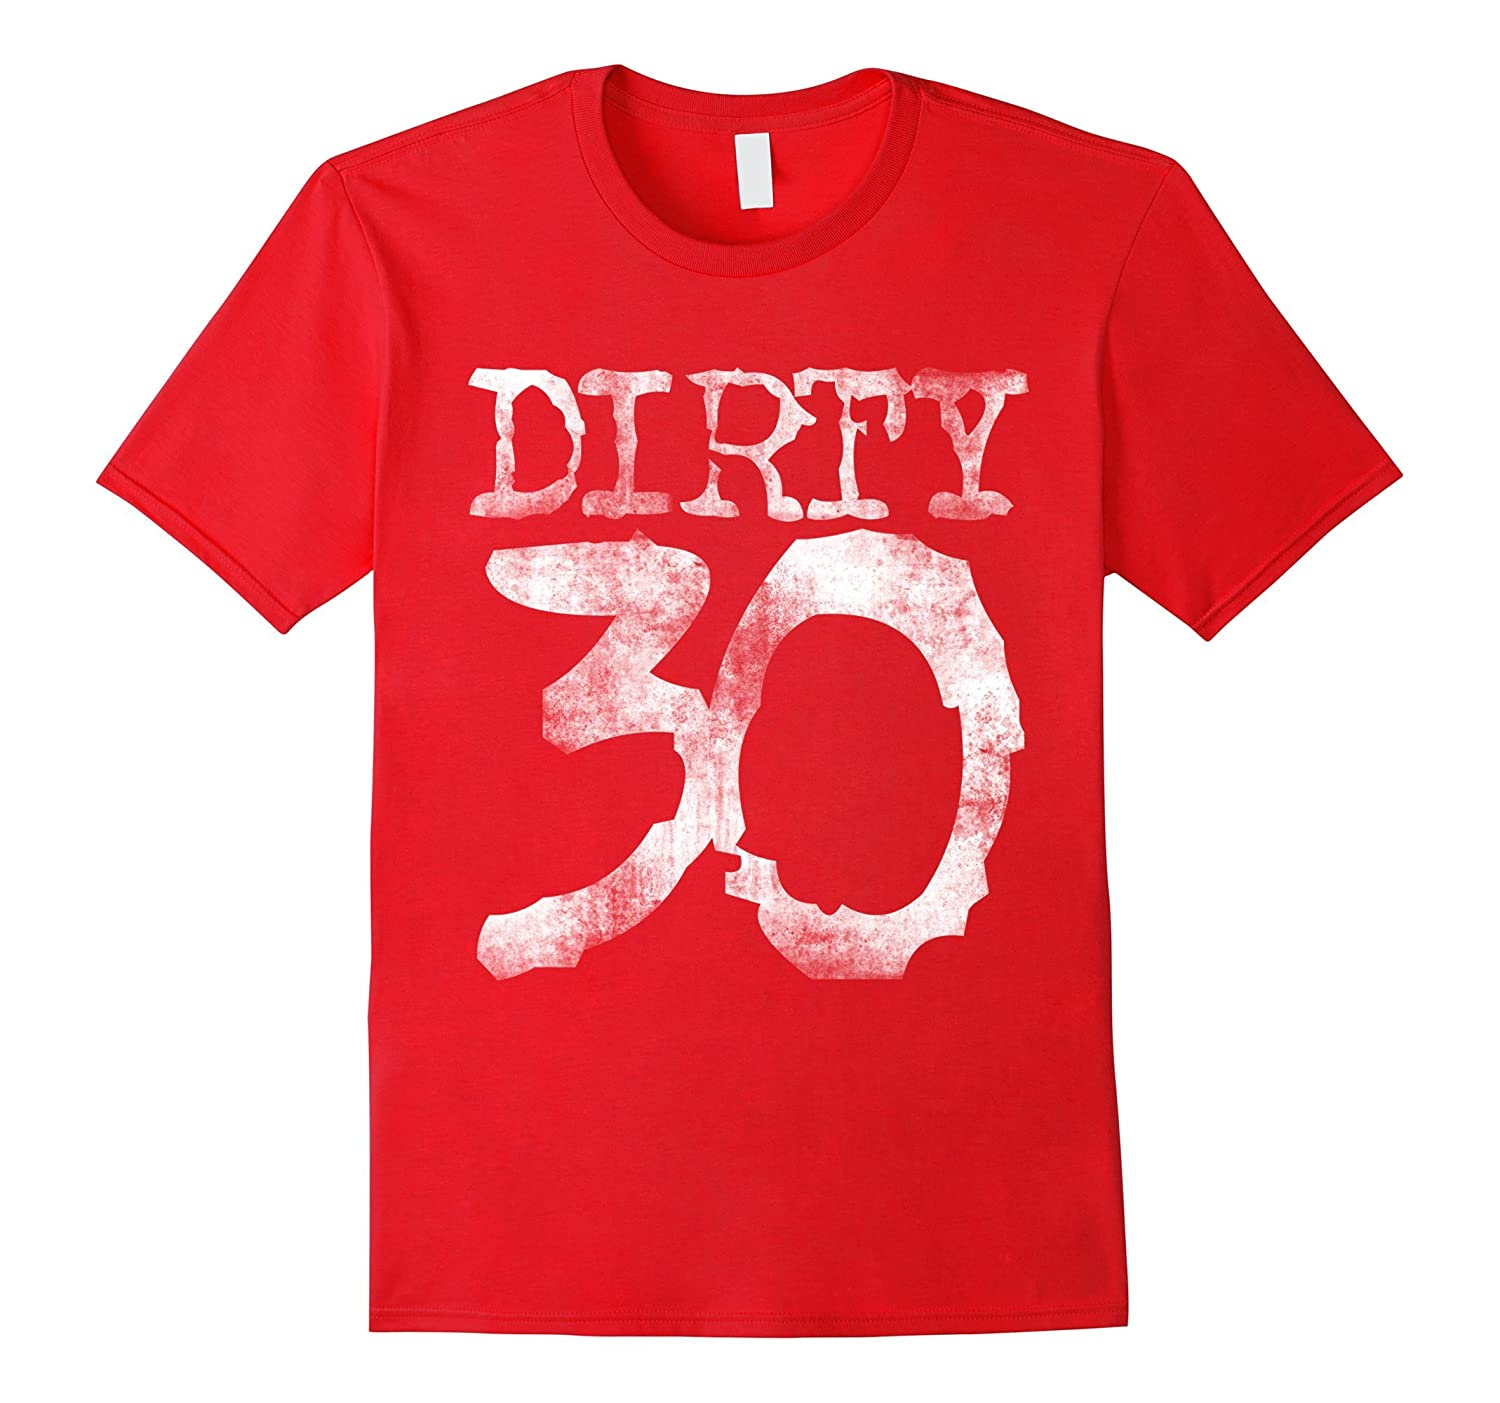 Dirty 30 Shirt 30th Birthday Party T Year Old Tees TD Theteejob